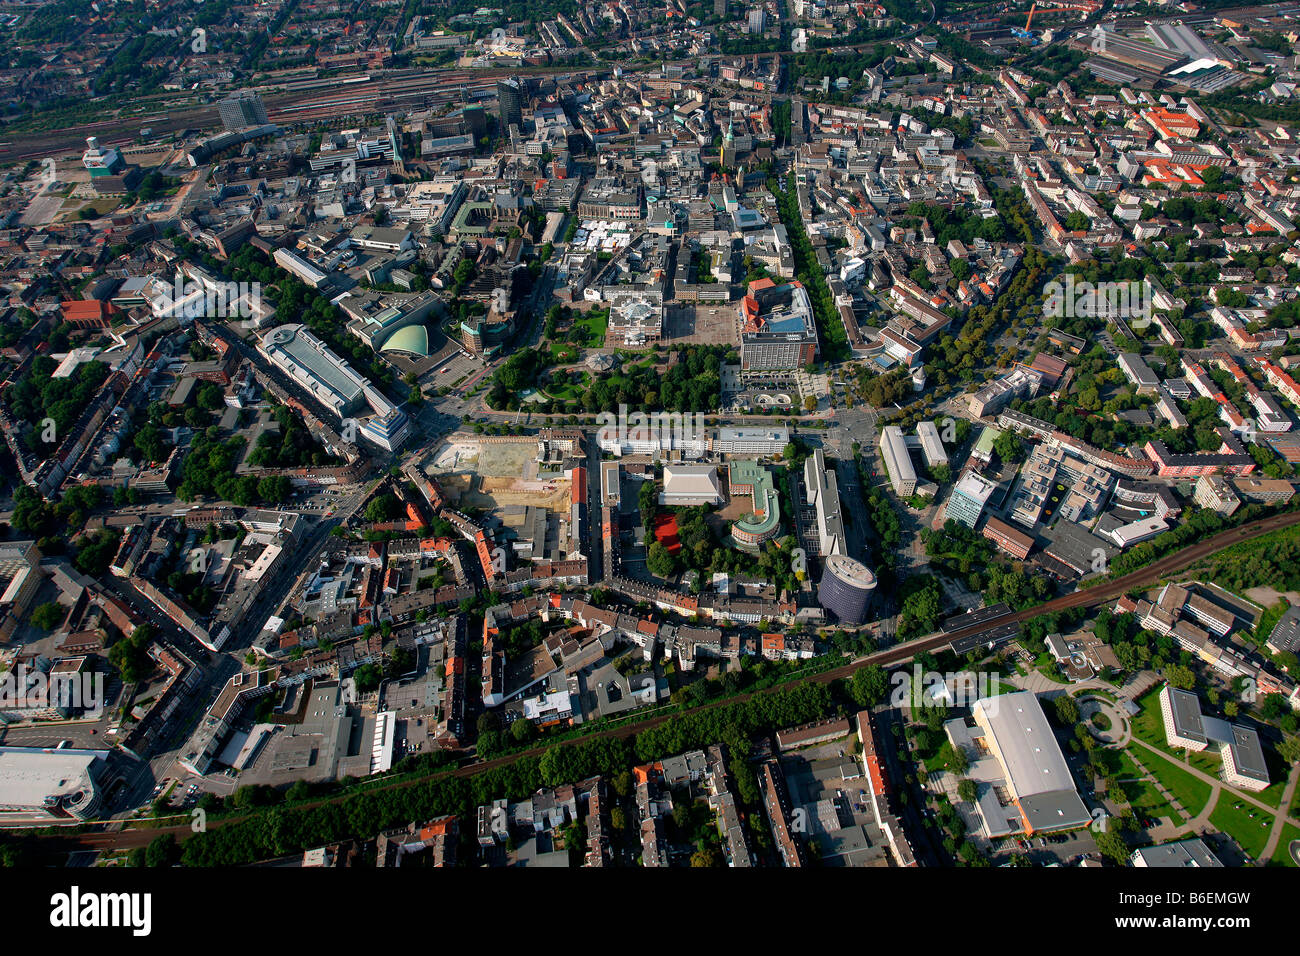 Aerial photograph, inner city, outward road, Dortmund, Ruhr Area, North Rhine-Westphalia, Germany, Europe - Stock Image